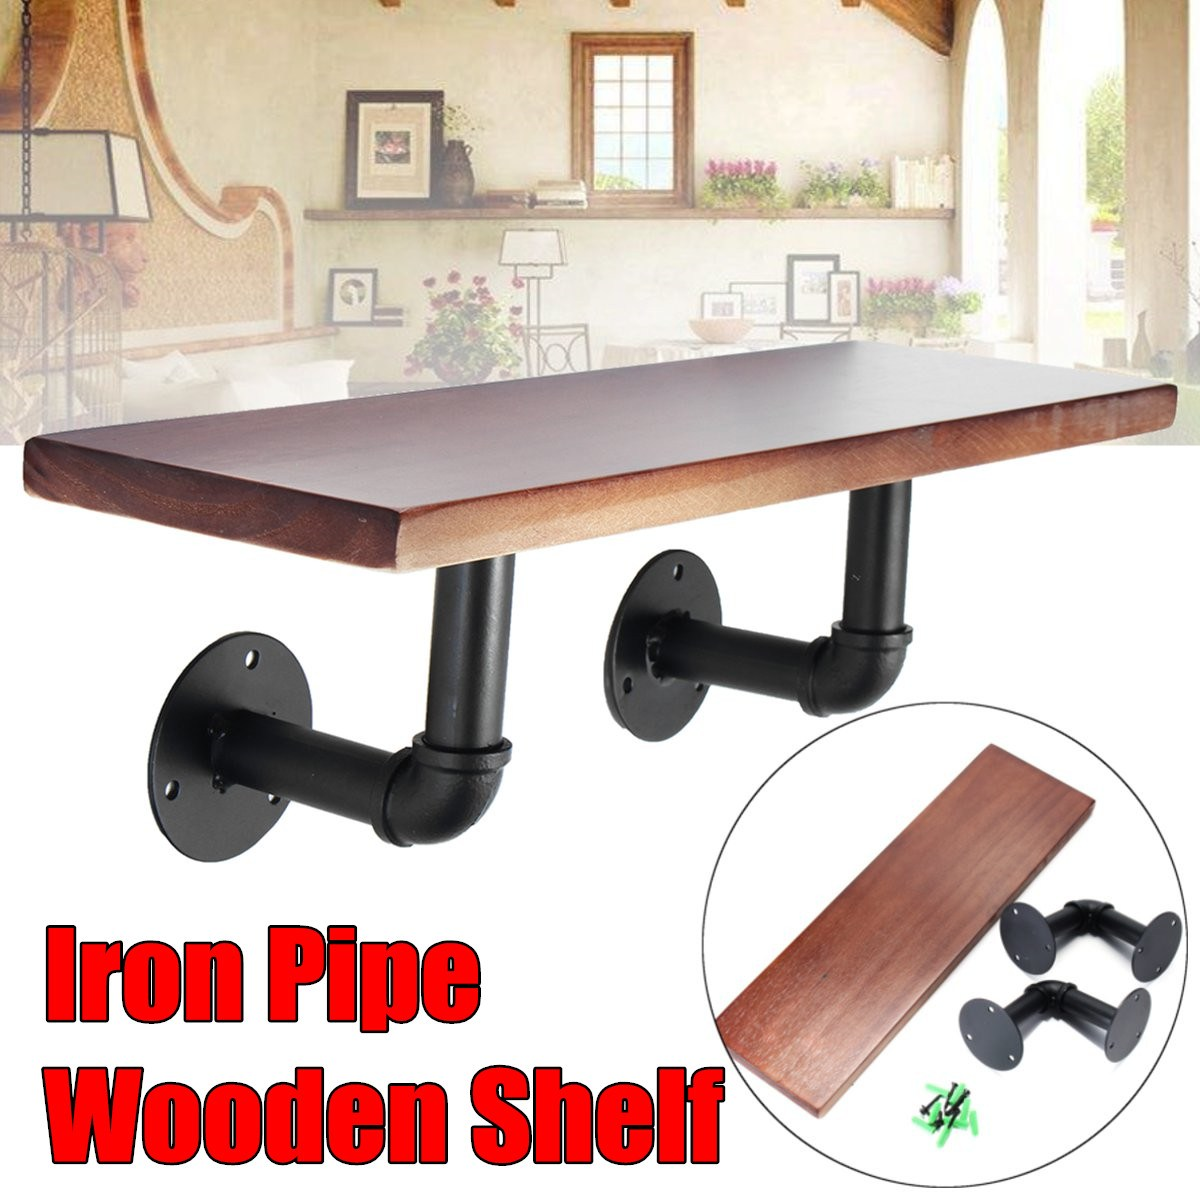 50cm Industrial Wall Mount Iron Pipe Shelf Rustic Urban Wooden Shelving New Arrival new arrival iron